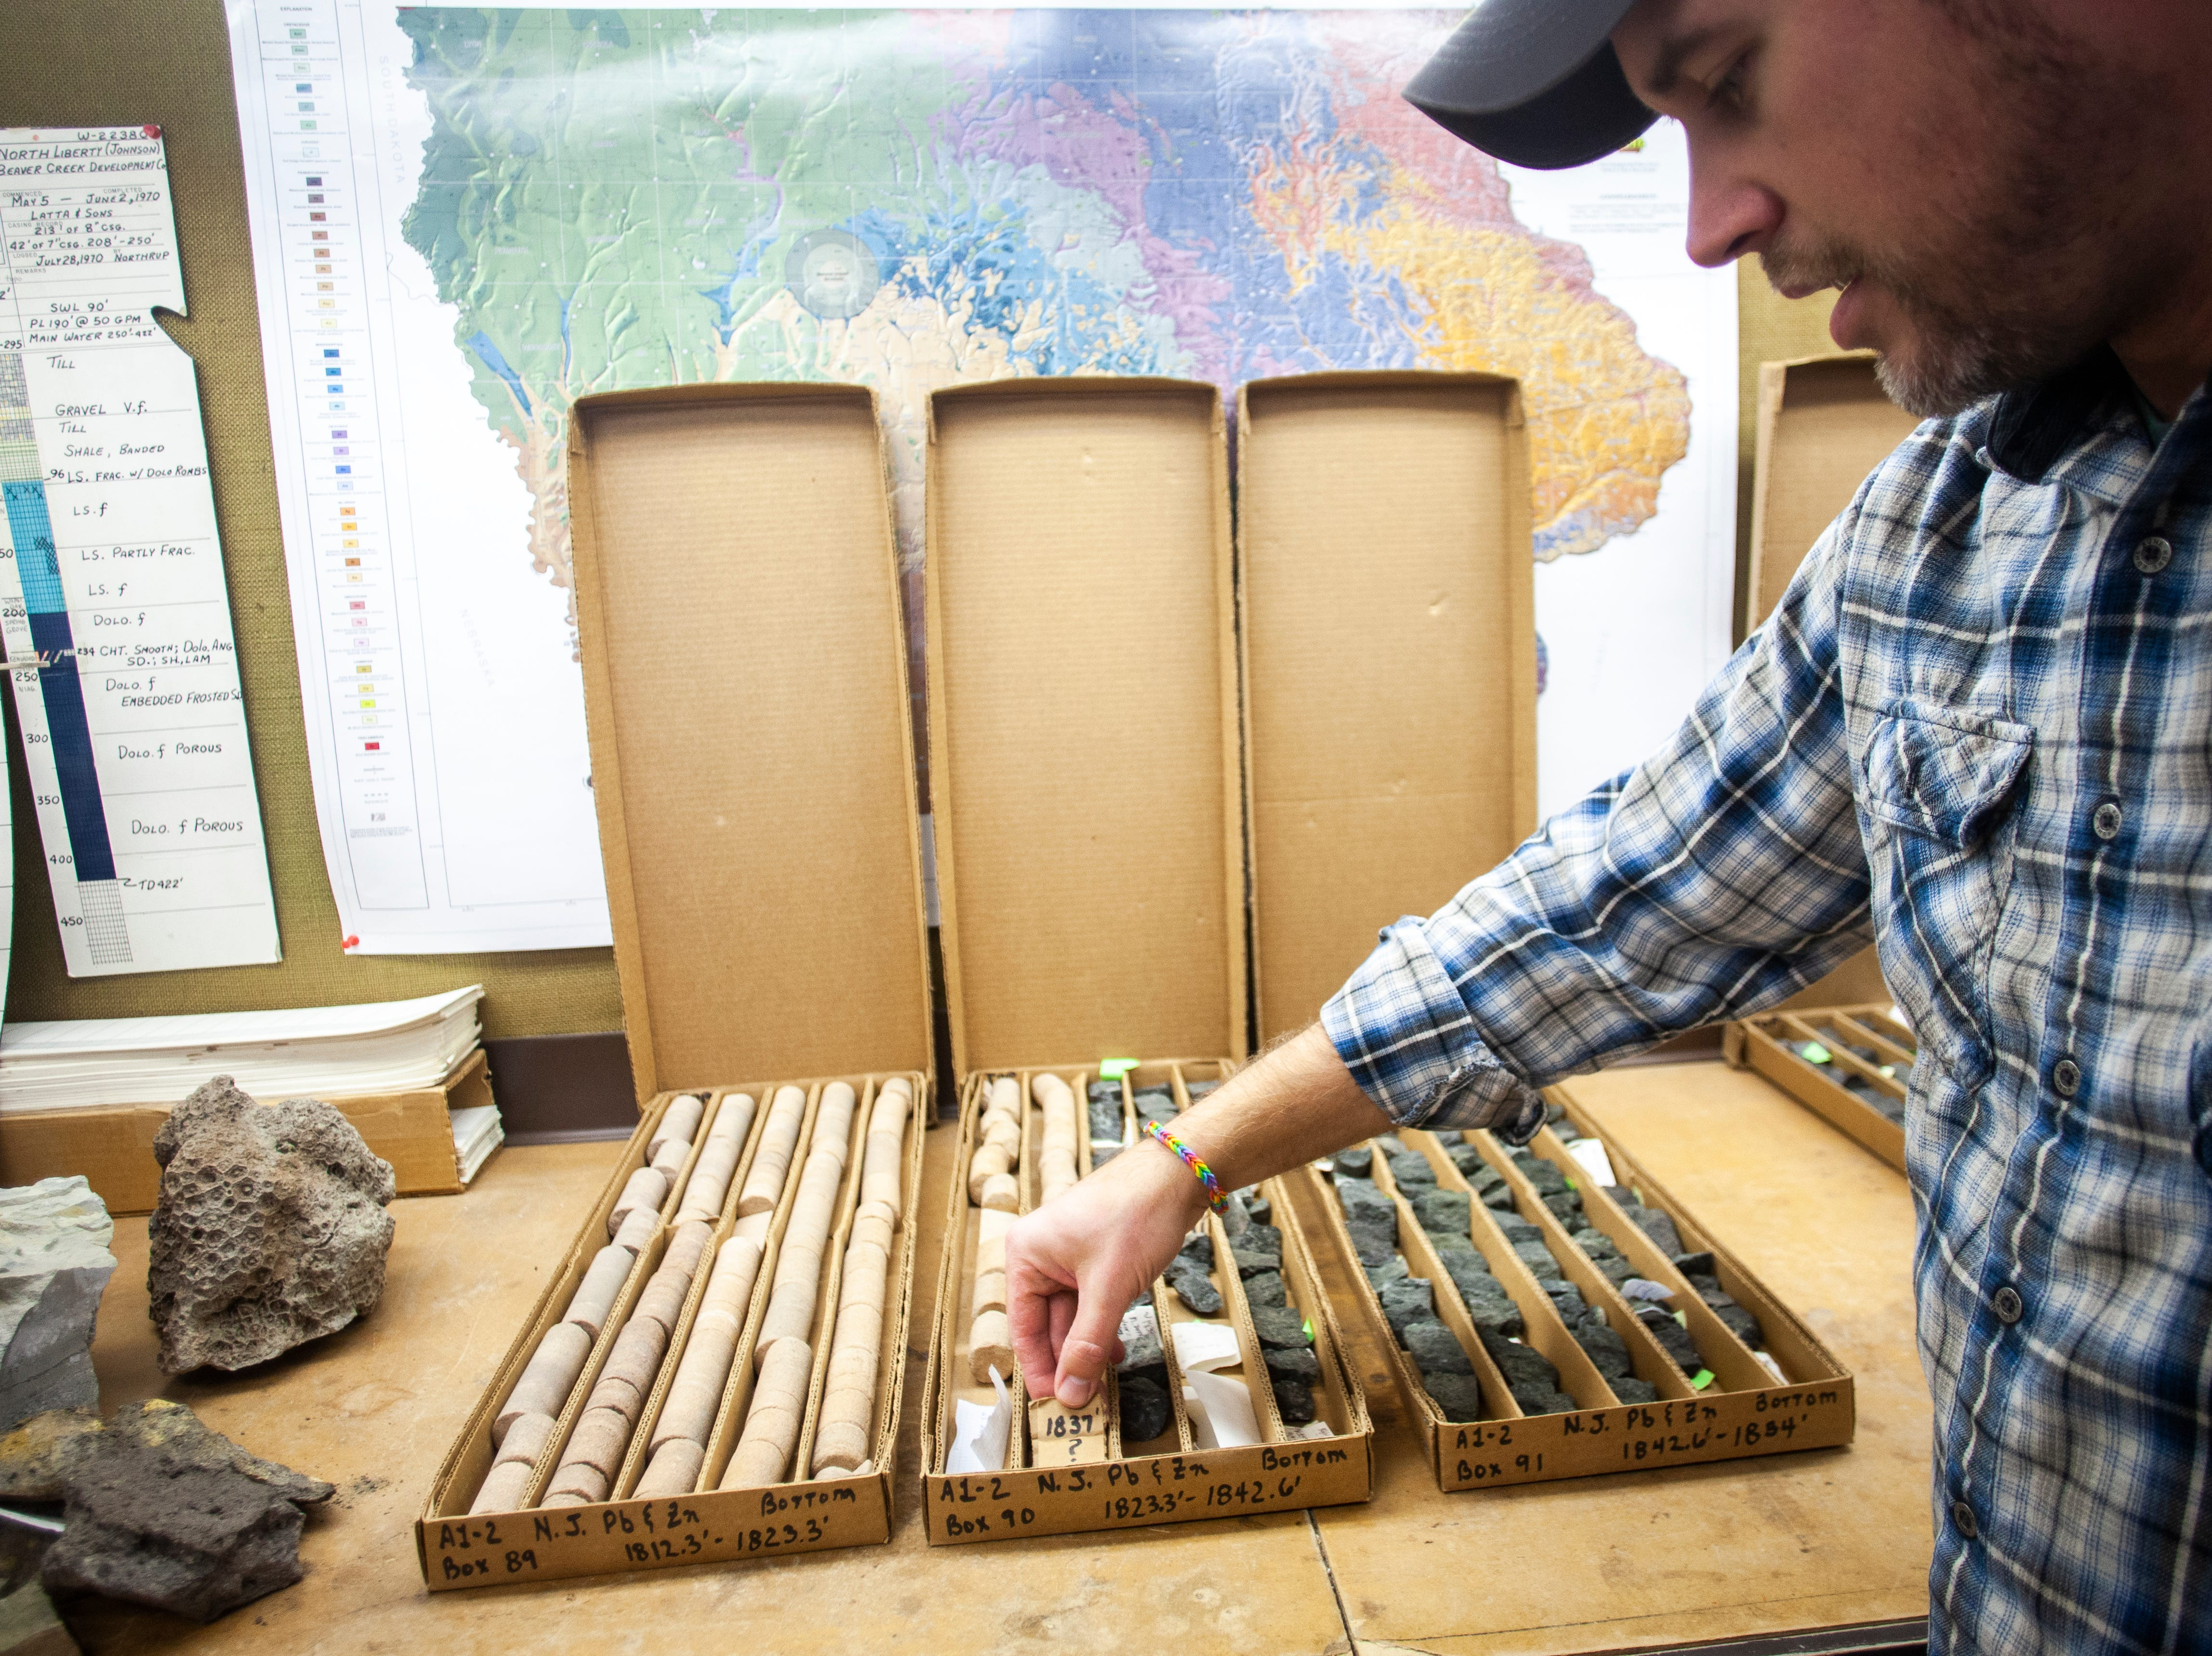 Ryan Clark of the Iowa Geological Survey describes the transition that the halves of core samples taken in northeast Iowa show with sandstone in the upper left and transitioning into a darker, potentially mineral rich rock, on the right, on Monday, Jan. 7, 2019, at his office in the at UI Oakdale Research Campus in Coralville, Iowa.